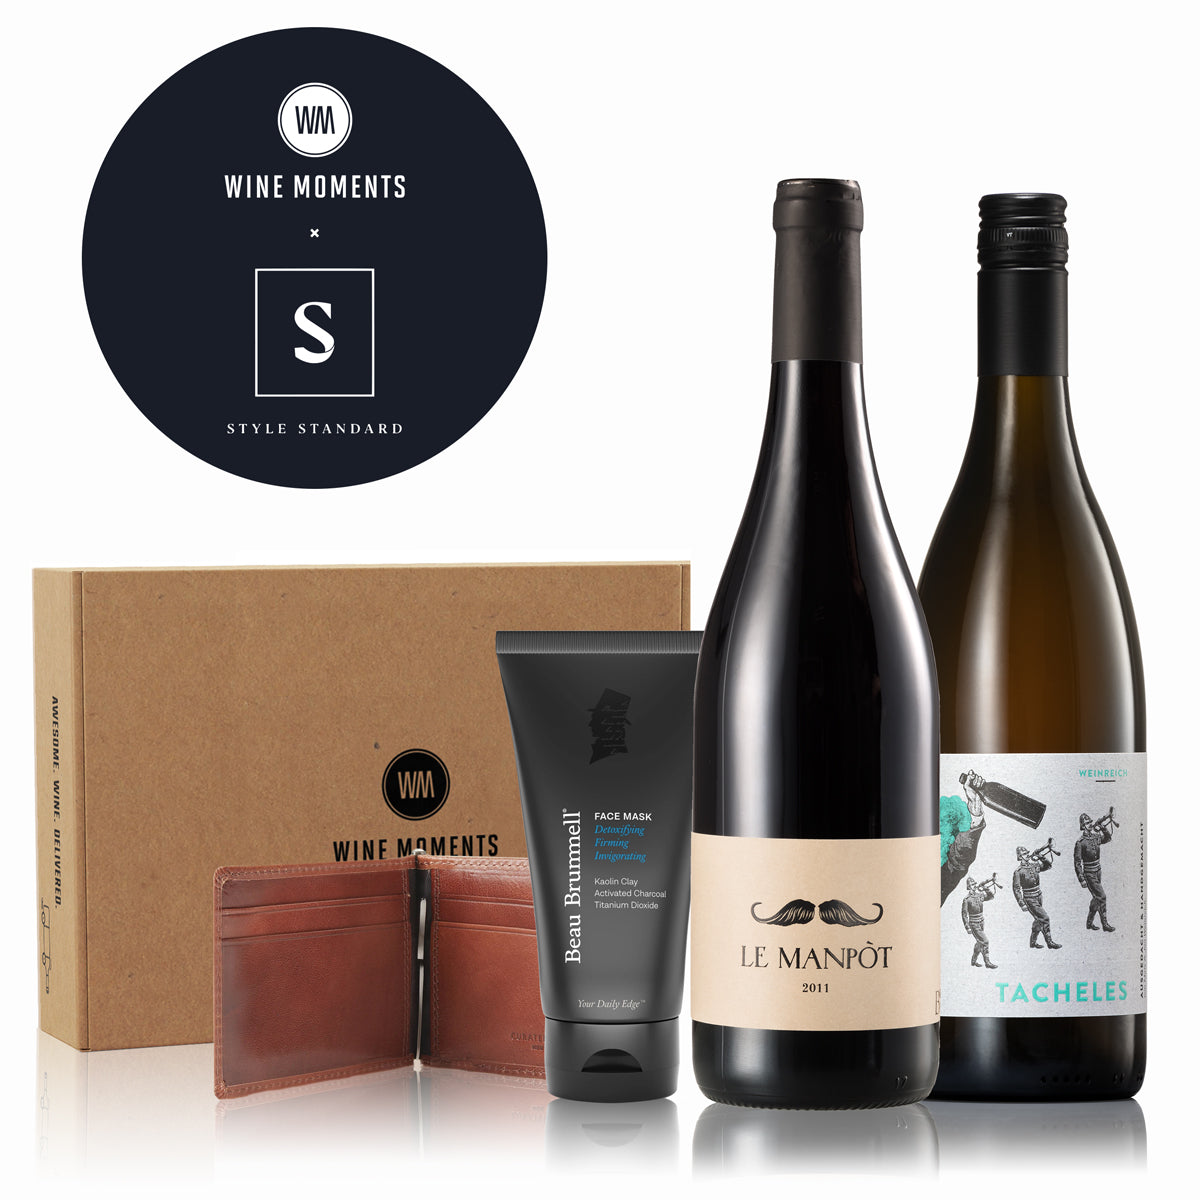 Wine Moments x Style Standard Treat Your Man Gift Box Contents and Gift Box